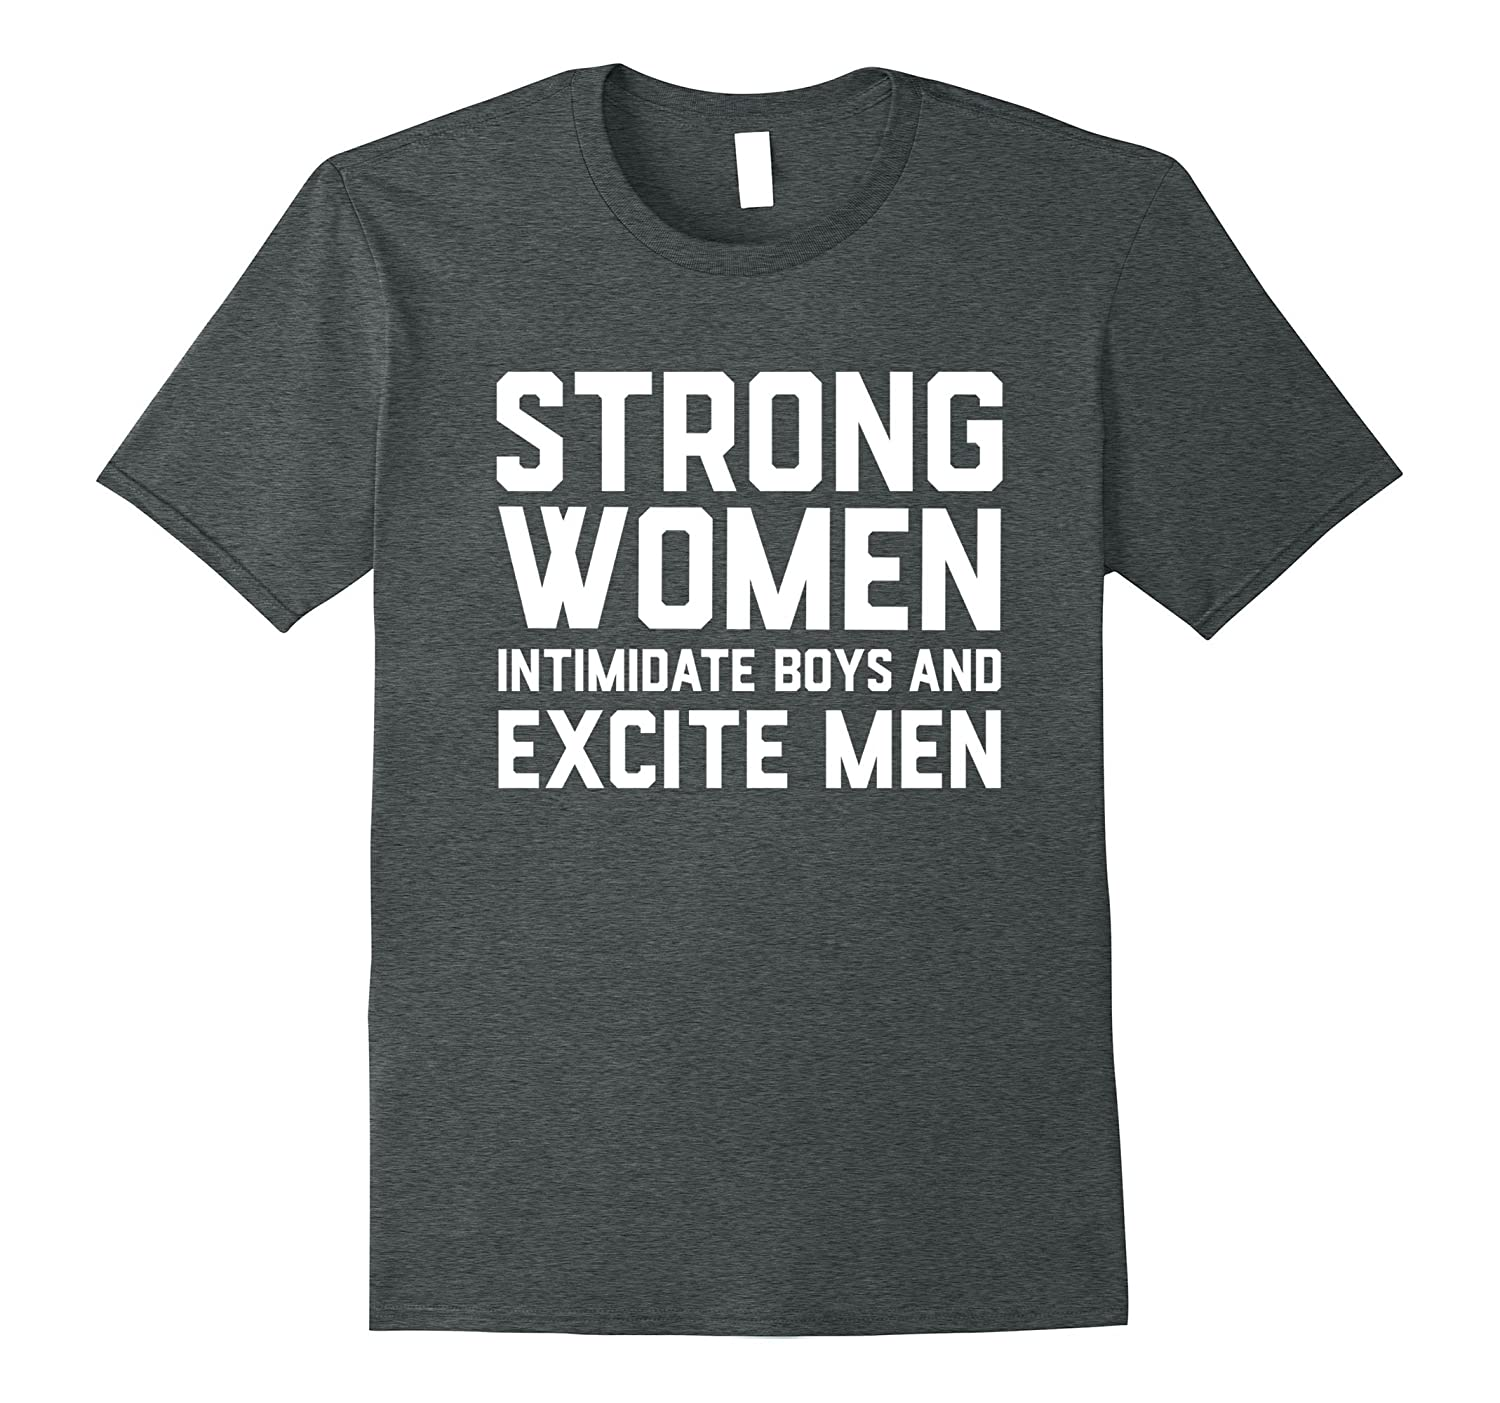 Strong Women Intimidate Boys and Excite Men